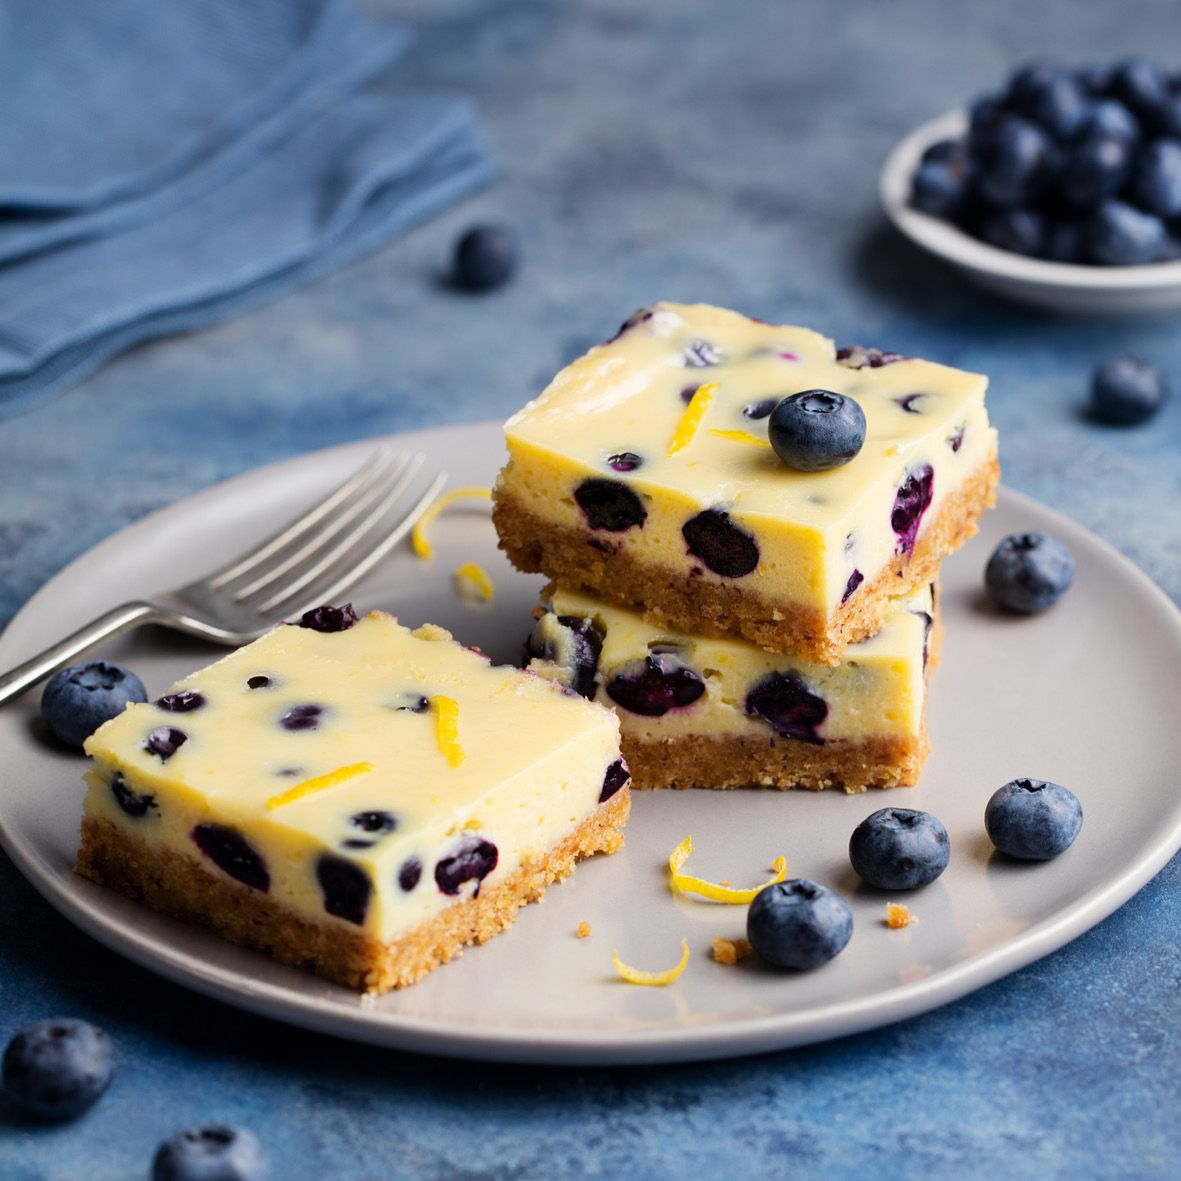 Vegan_Blueberry_Cheesecake_Slice.jpg